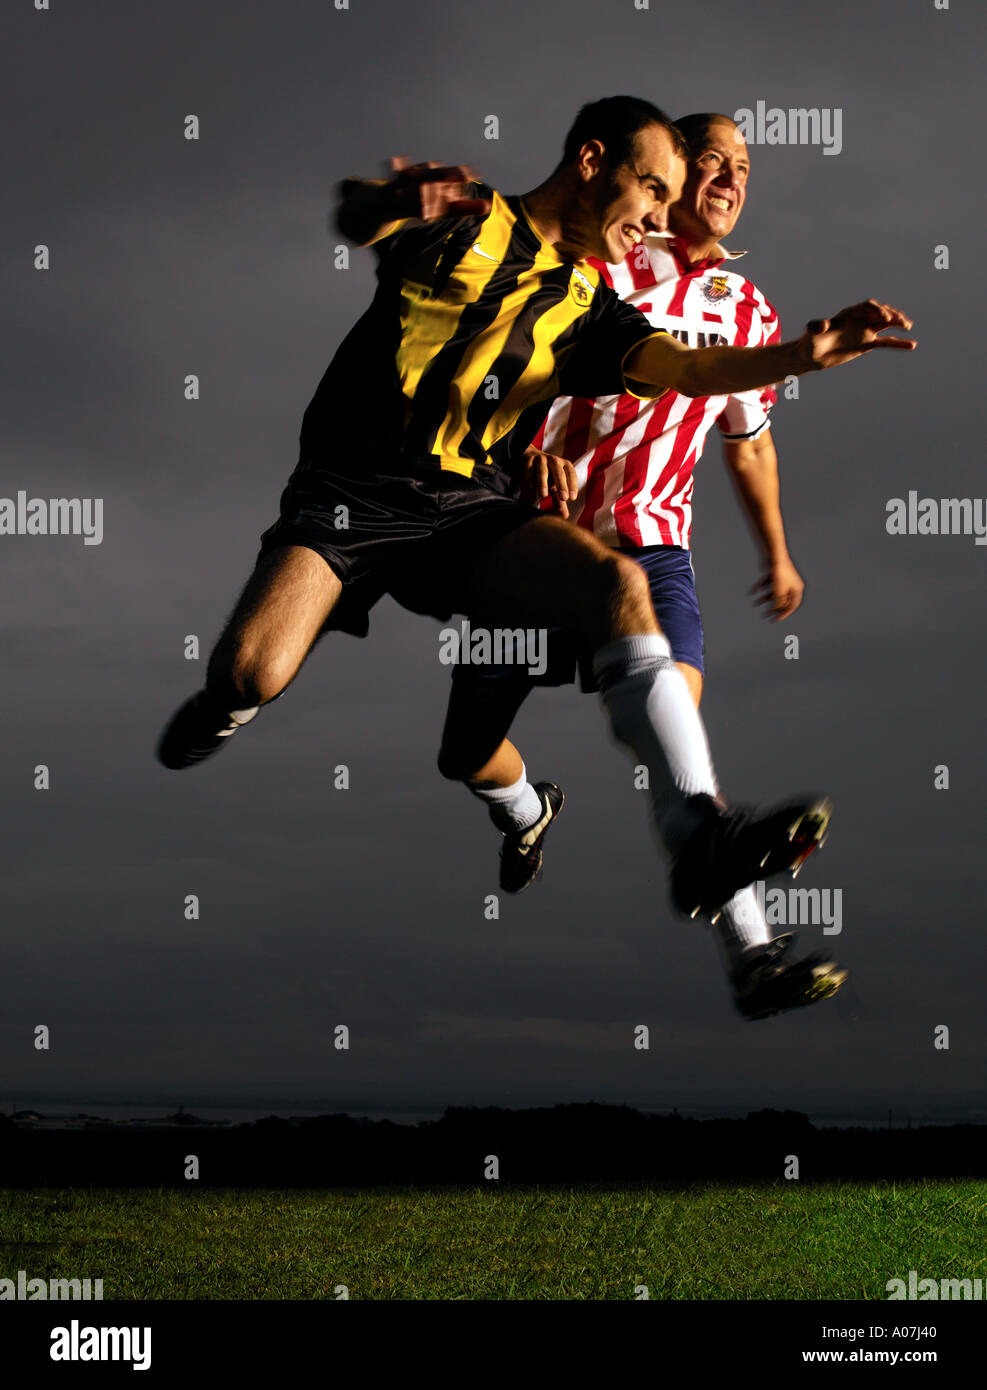 Action, Effort, Challenge, Sport, Horizontal, Full Length, Outdoors, 30-34 Years, Front View, Football, Caucasian Appearance. - Stock Image